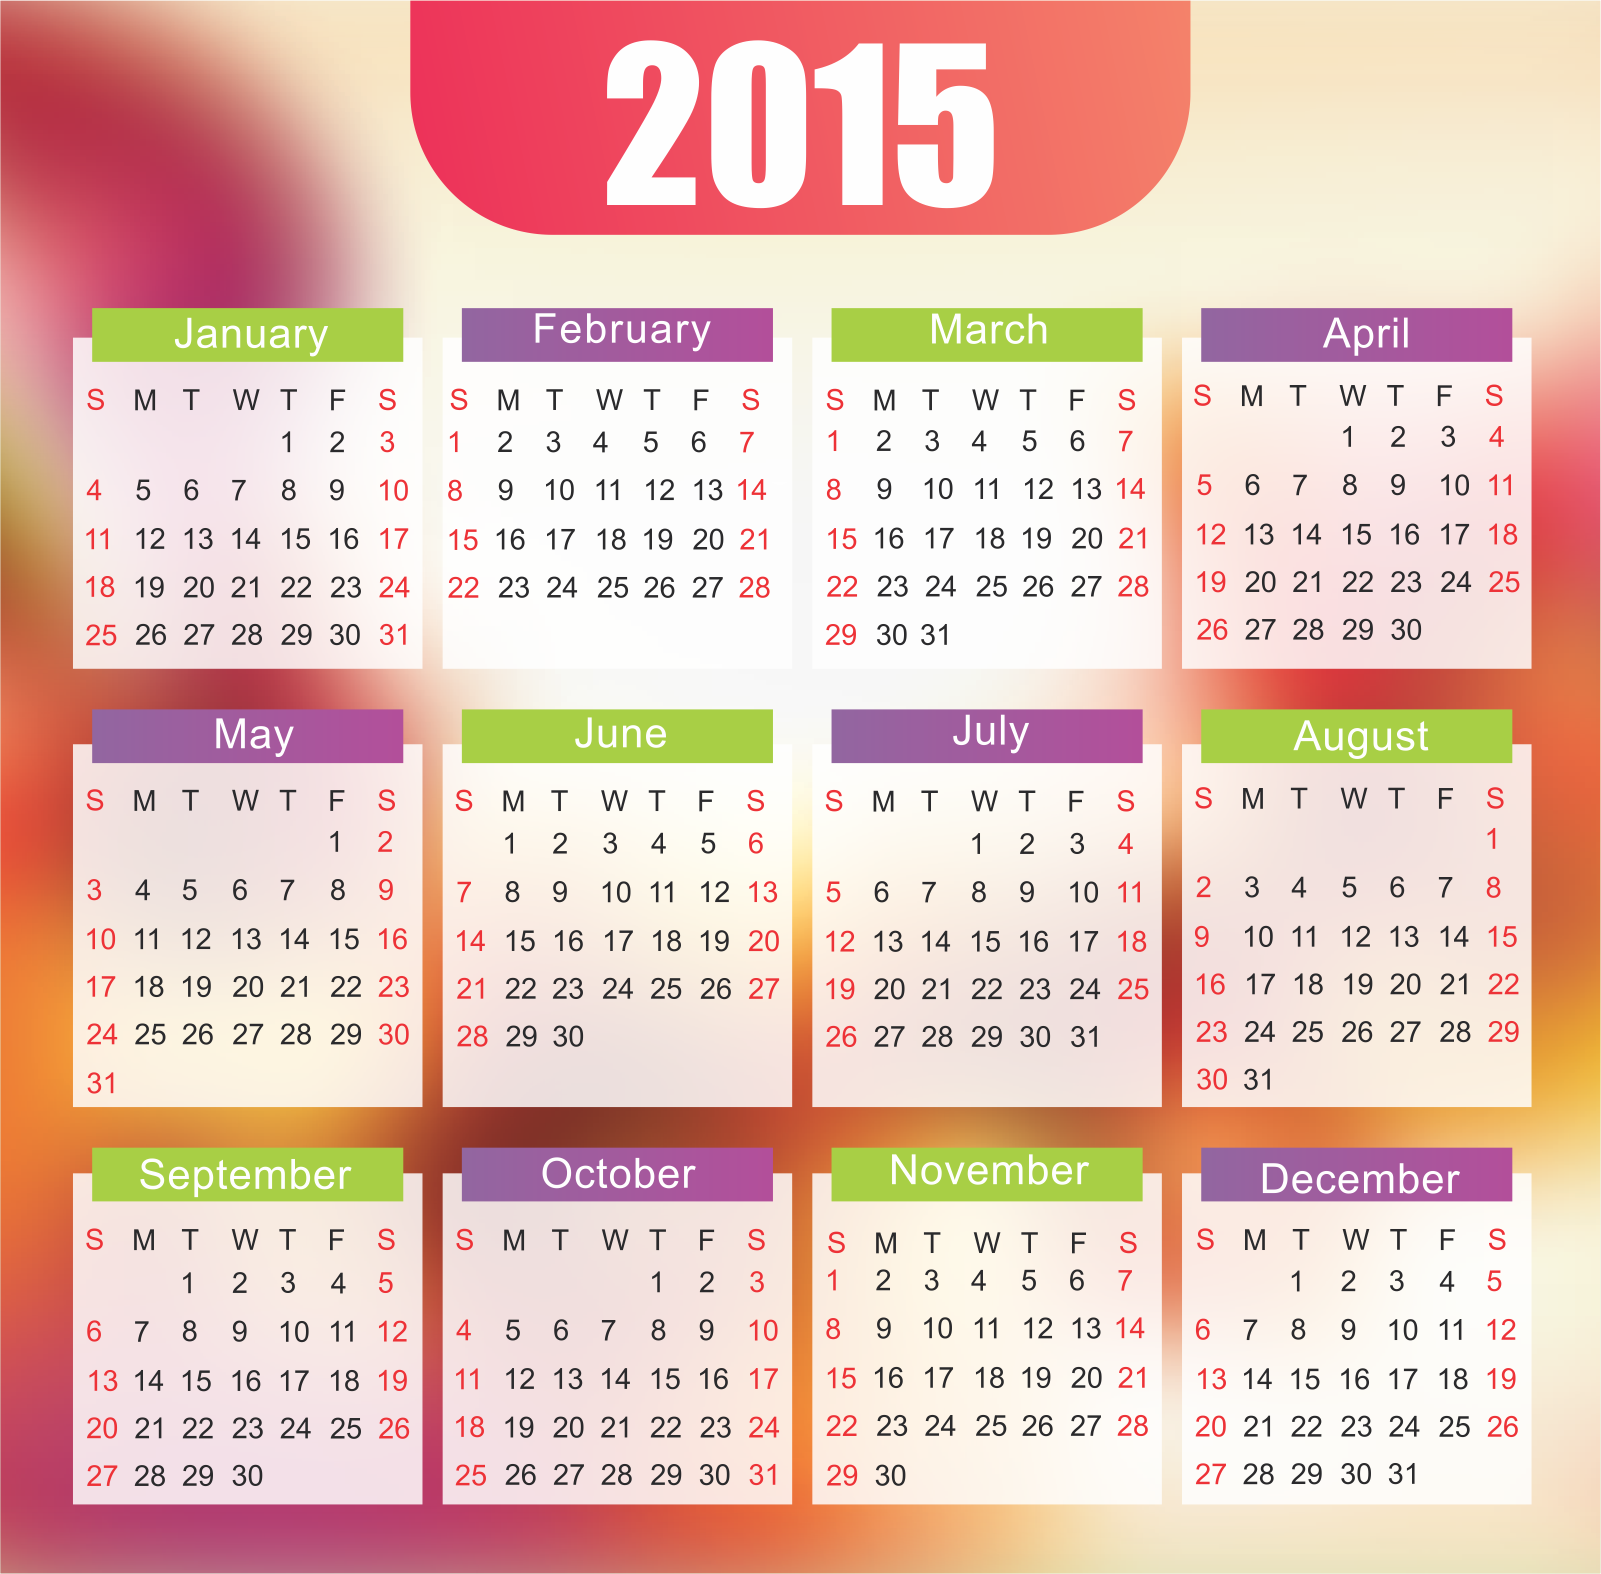 Download 2015 Calendar Wallpaper 2015 Calendar Download Calendar 1601x1574